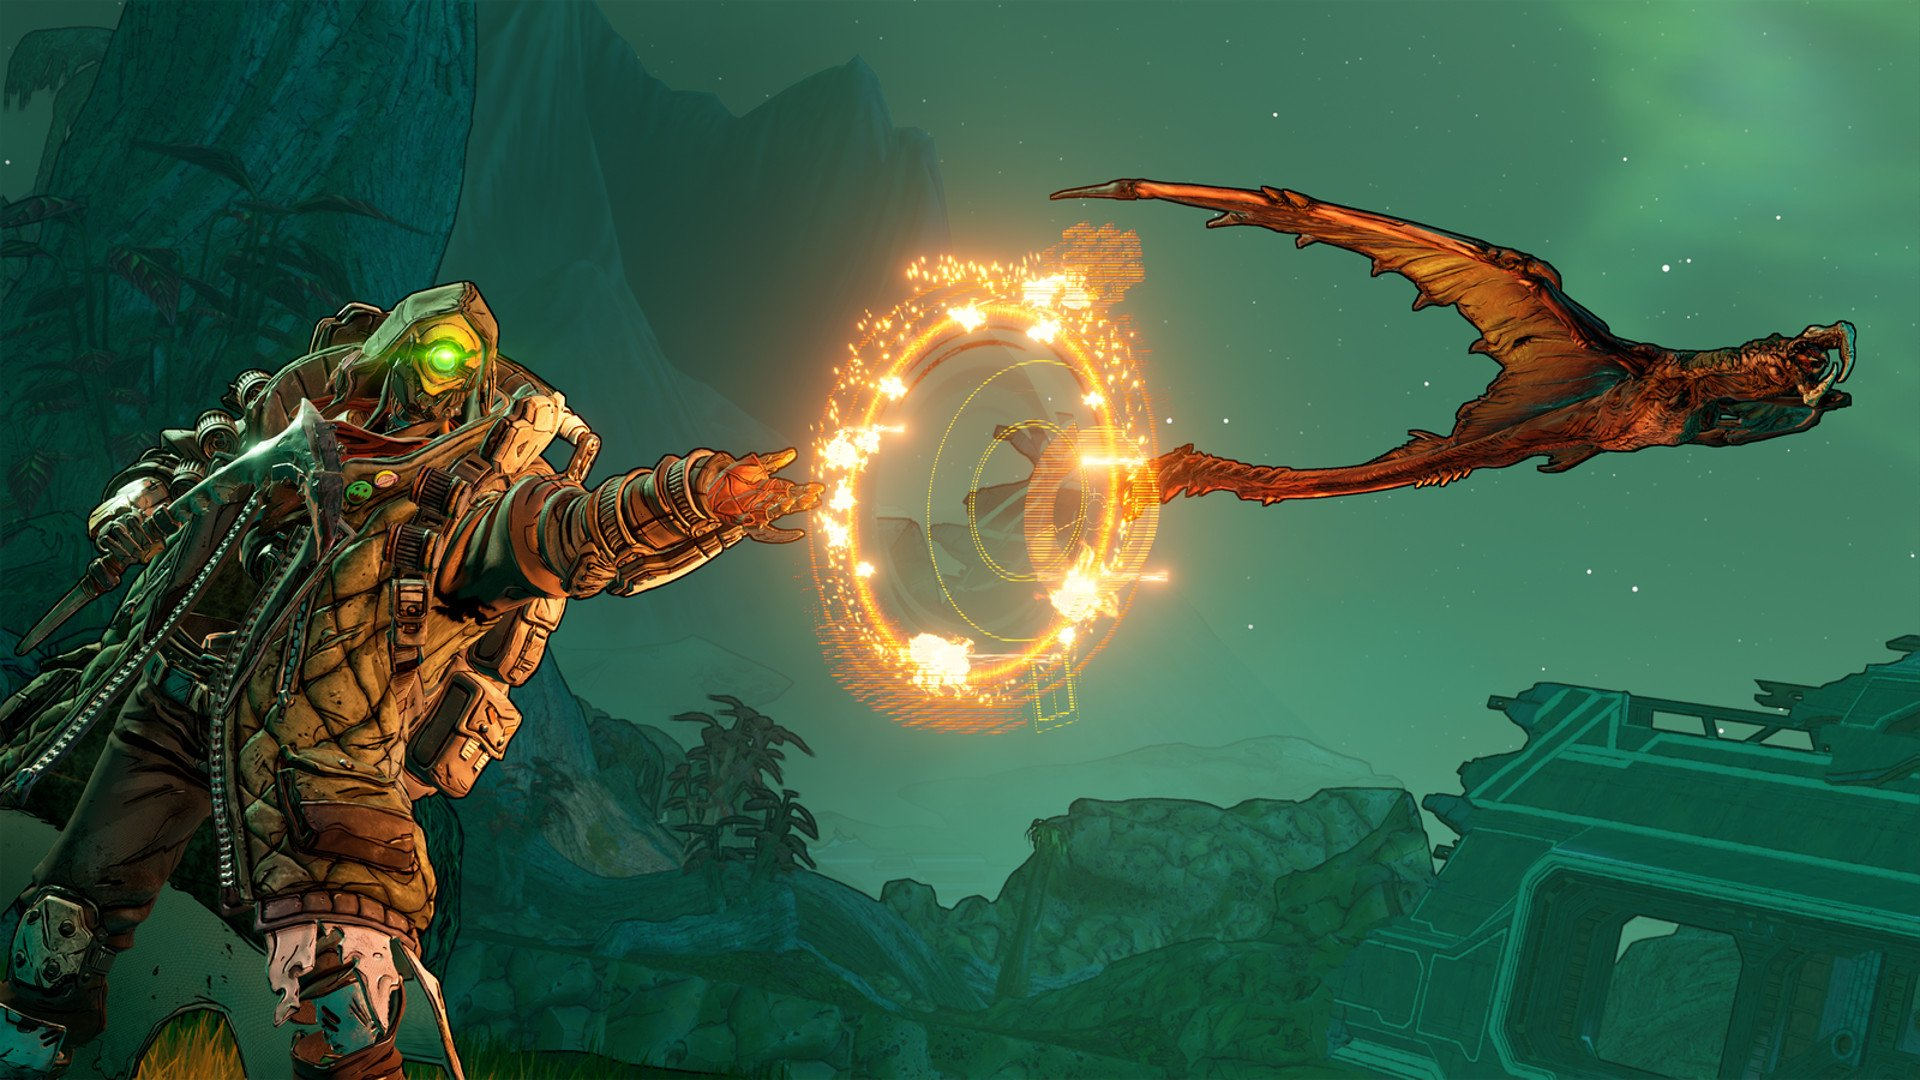 Borderlands 3 will include Denuvo's controversial DRM